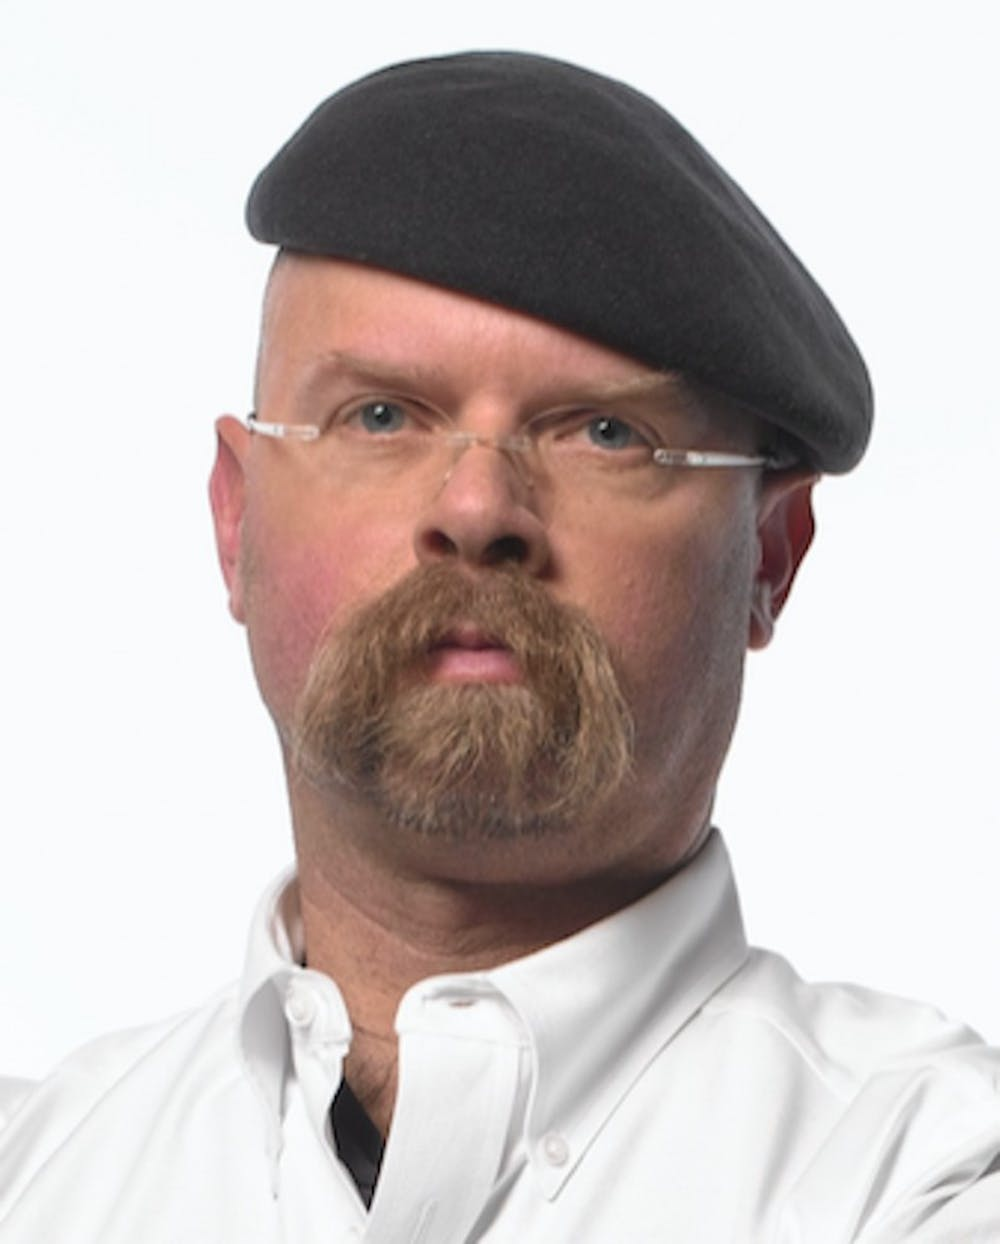 Jamie Hyneman to speak at commencement - Indiana Daily Student